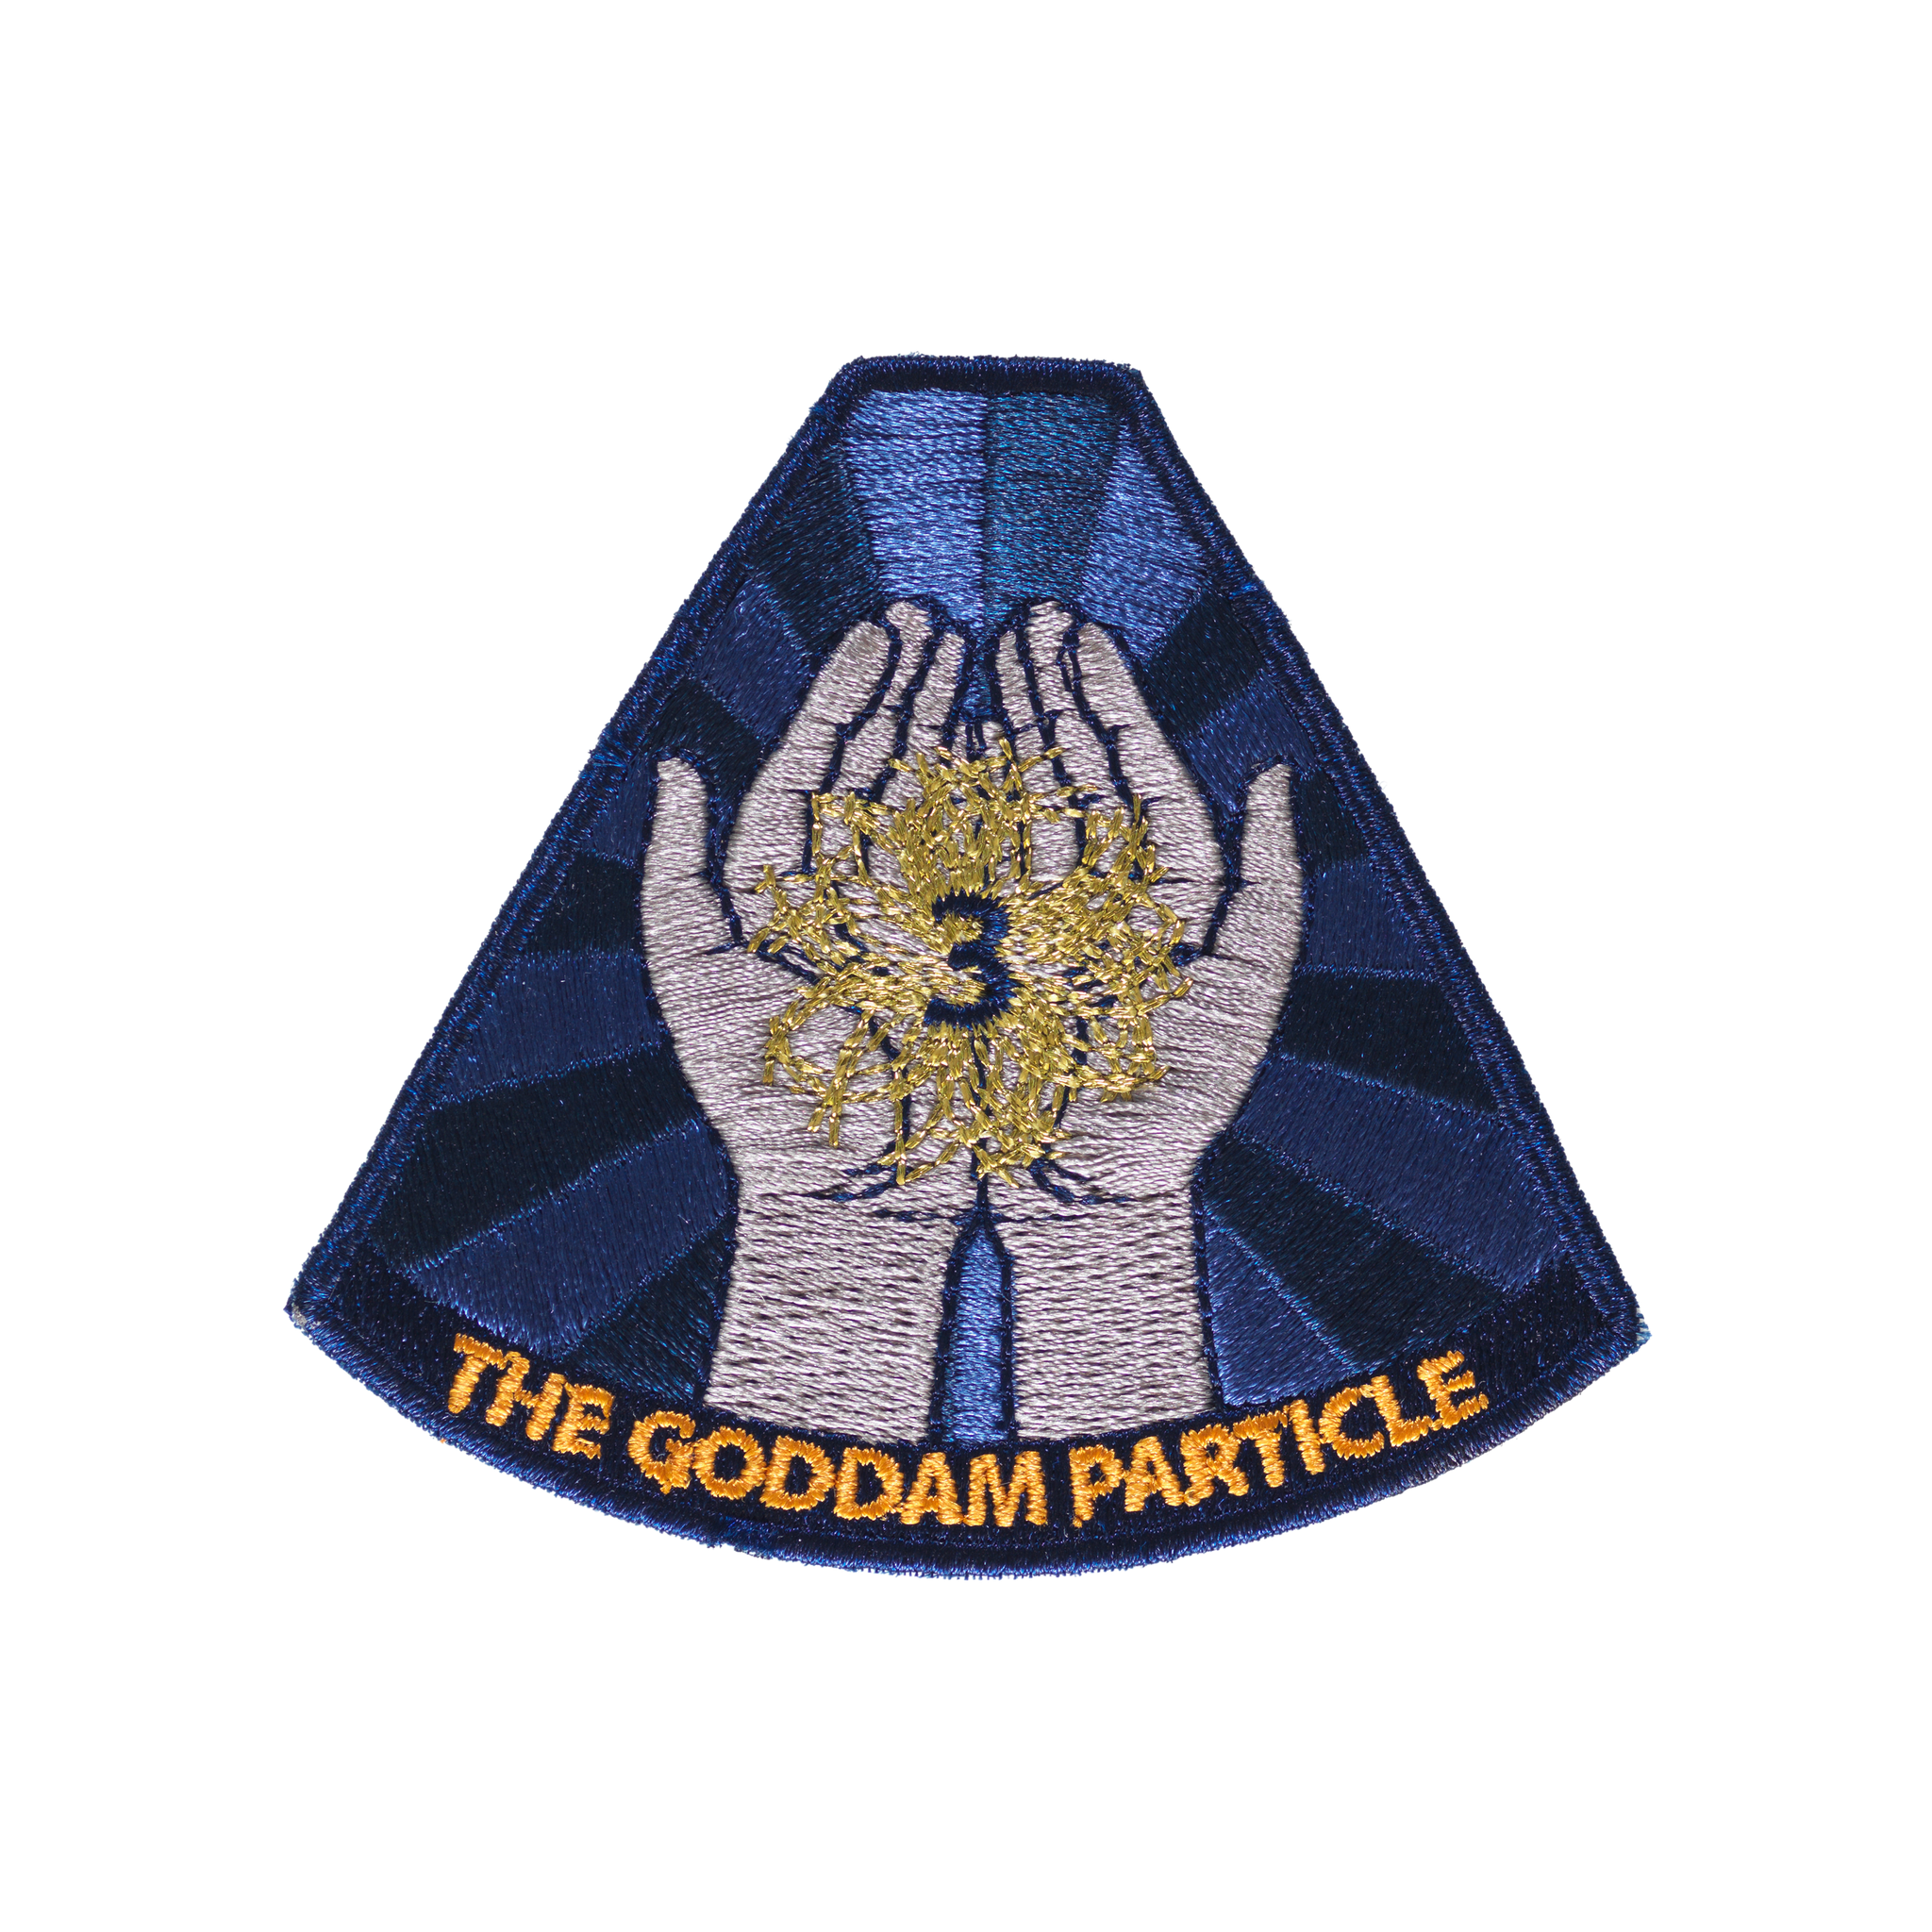 Scientific Controversies Patch: The Goddamn Particle